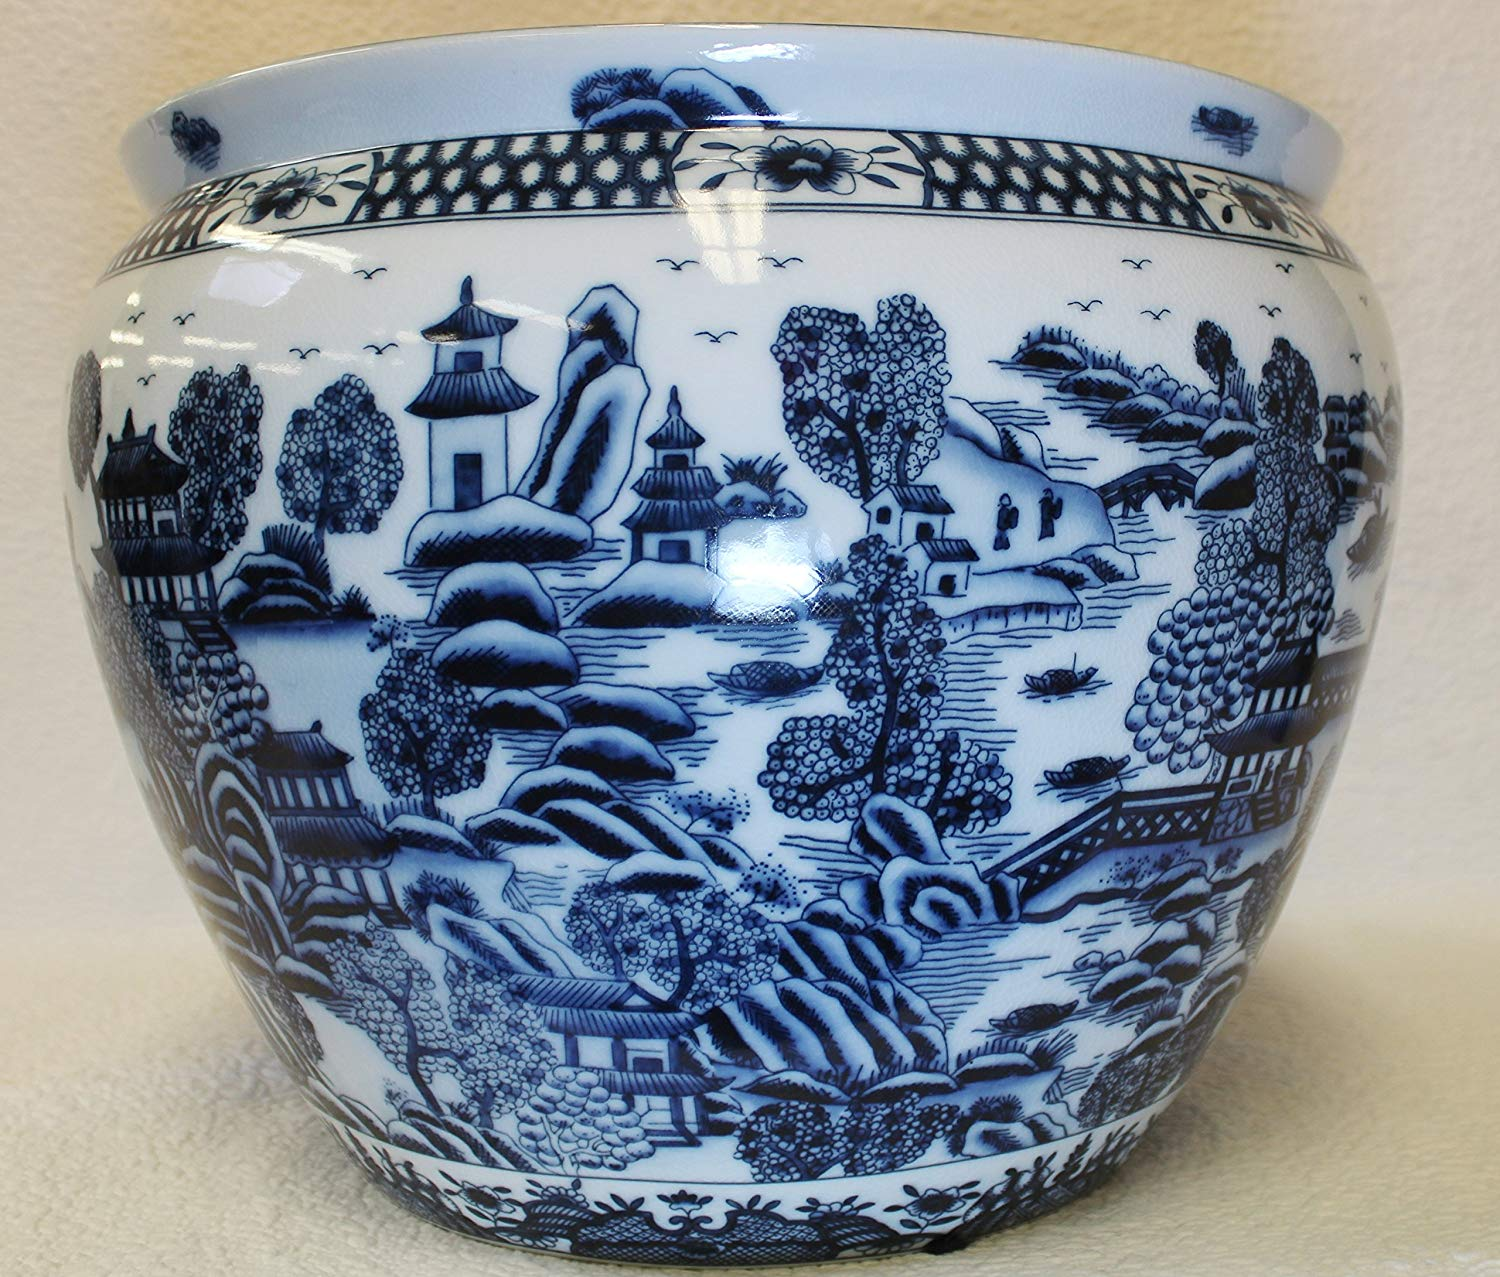 Forgotten City Blue and White Porcelain Fish Bowl 16""